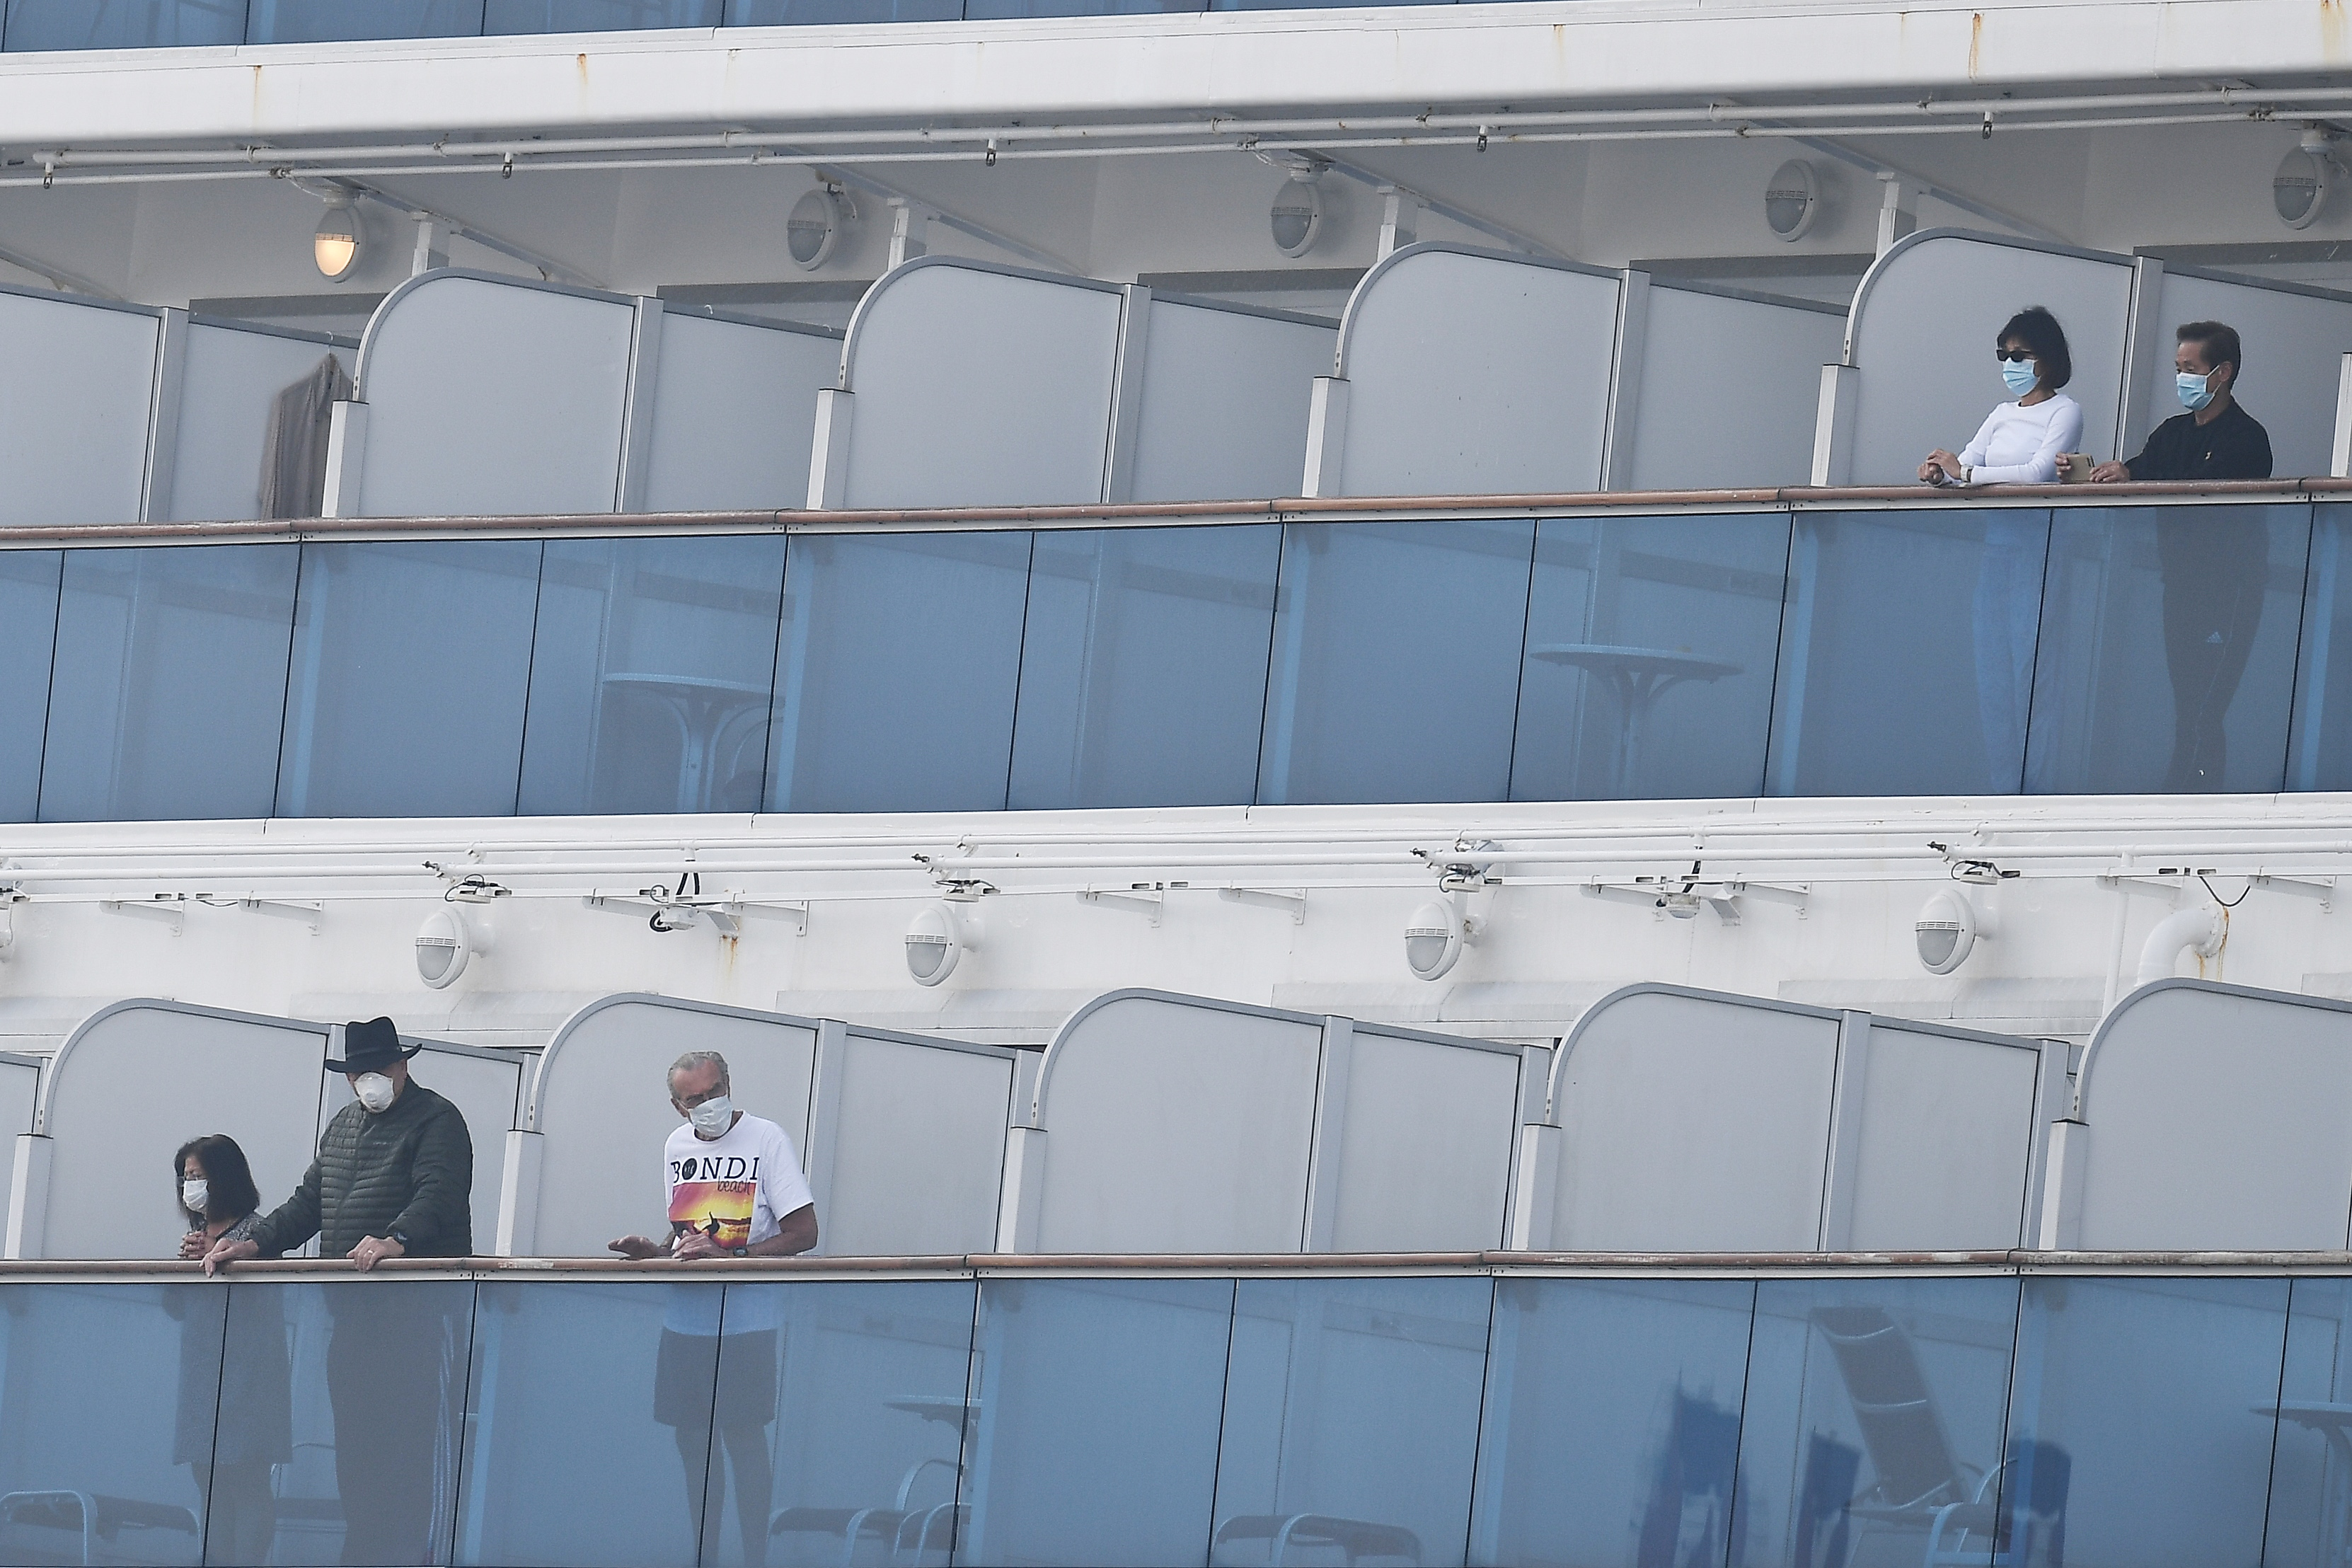 Passengers on balconies of the Diamond Princess cruise ship, docked in Yokohama, Japan, on February 14.